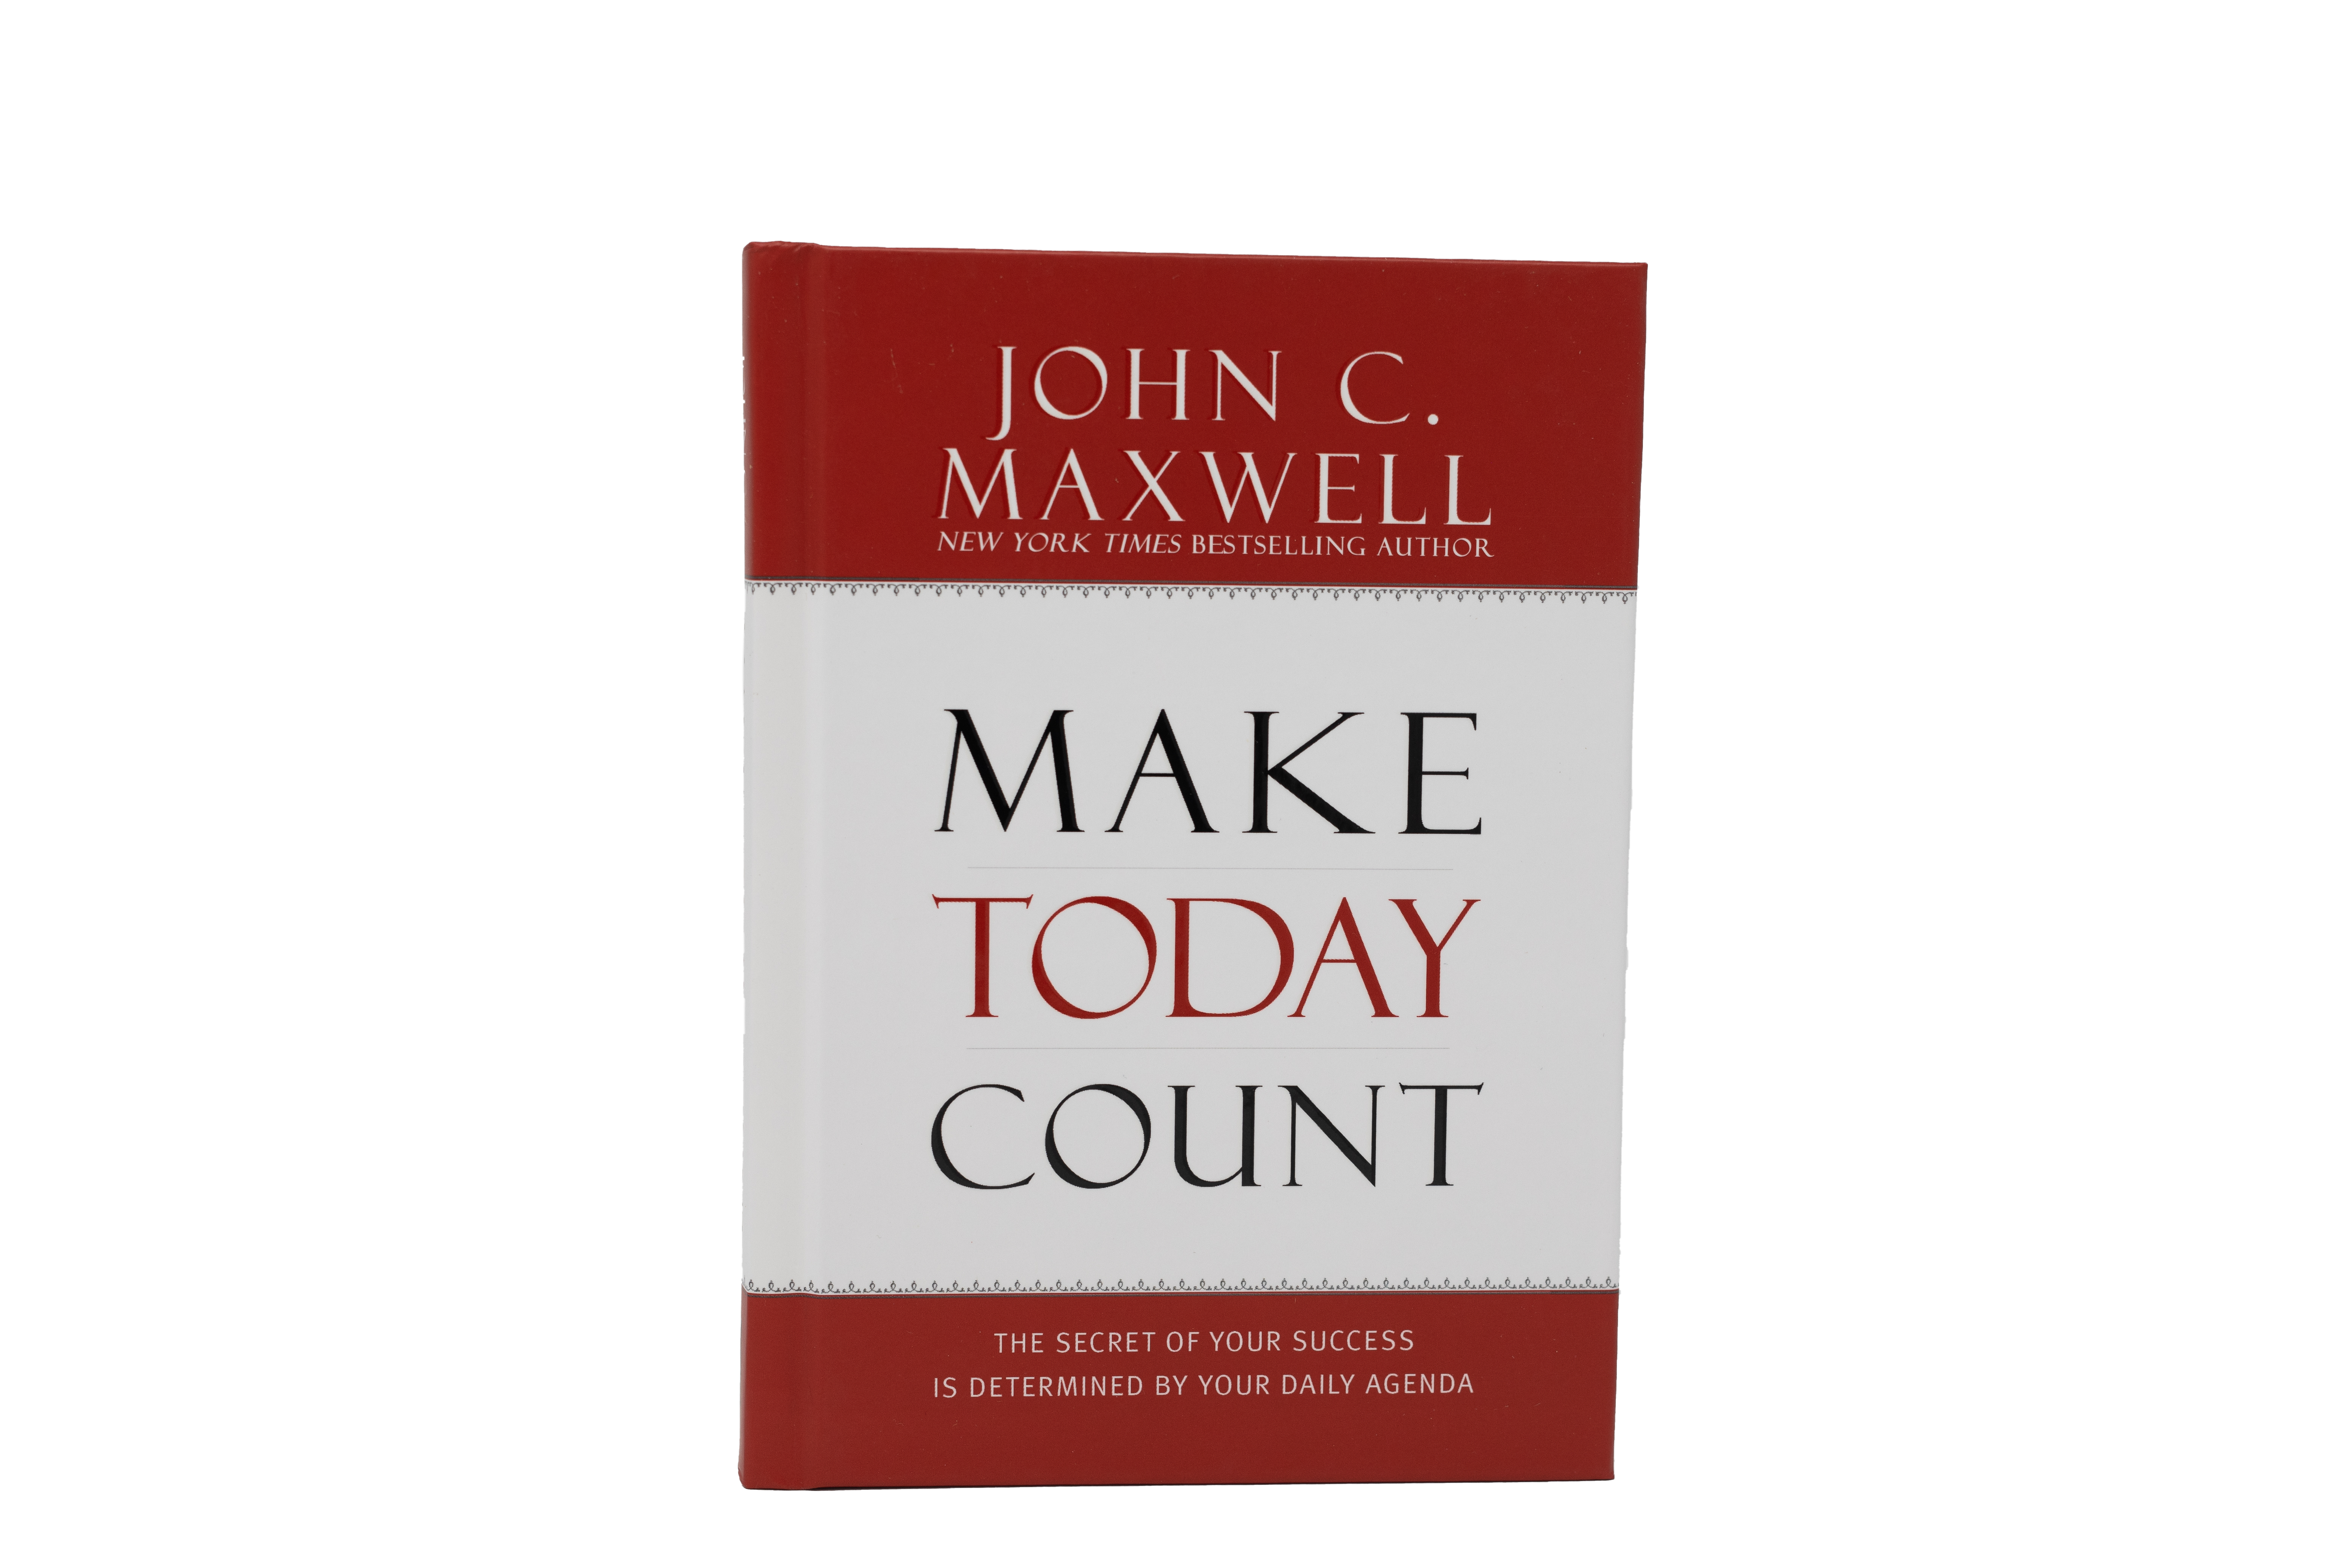 Make Today Count [Hardcover]